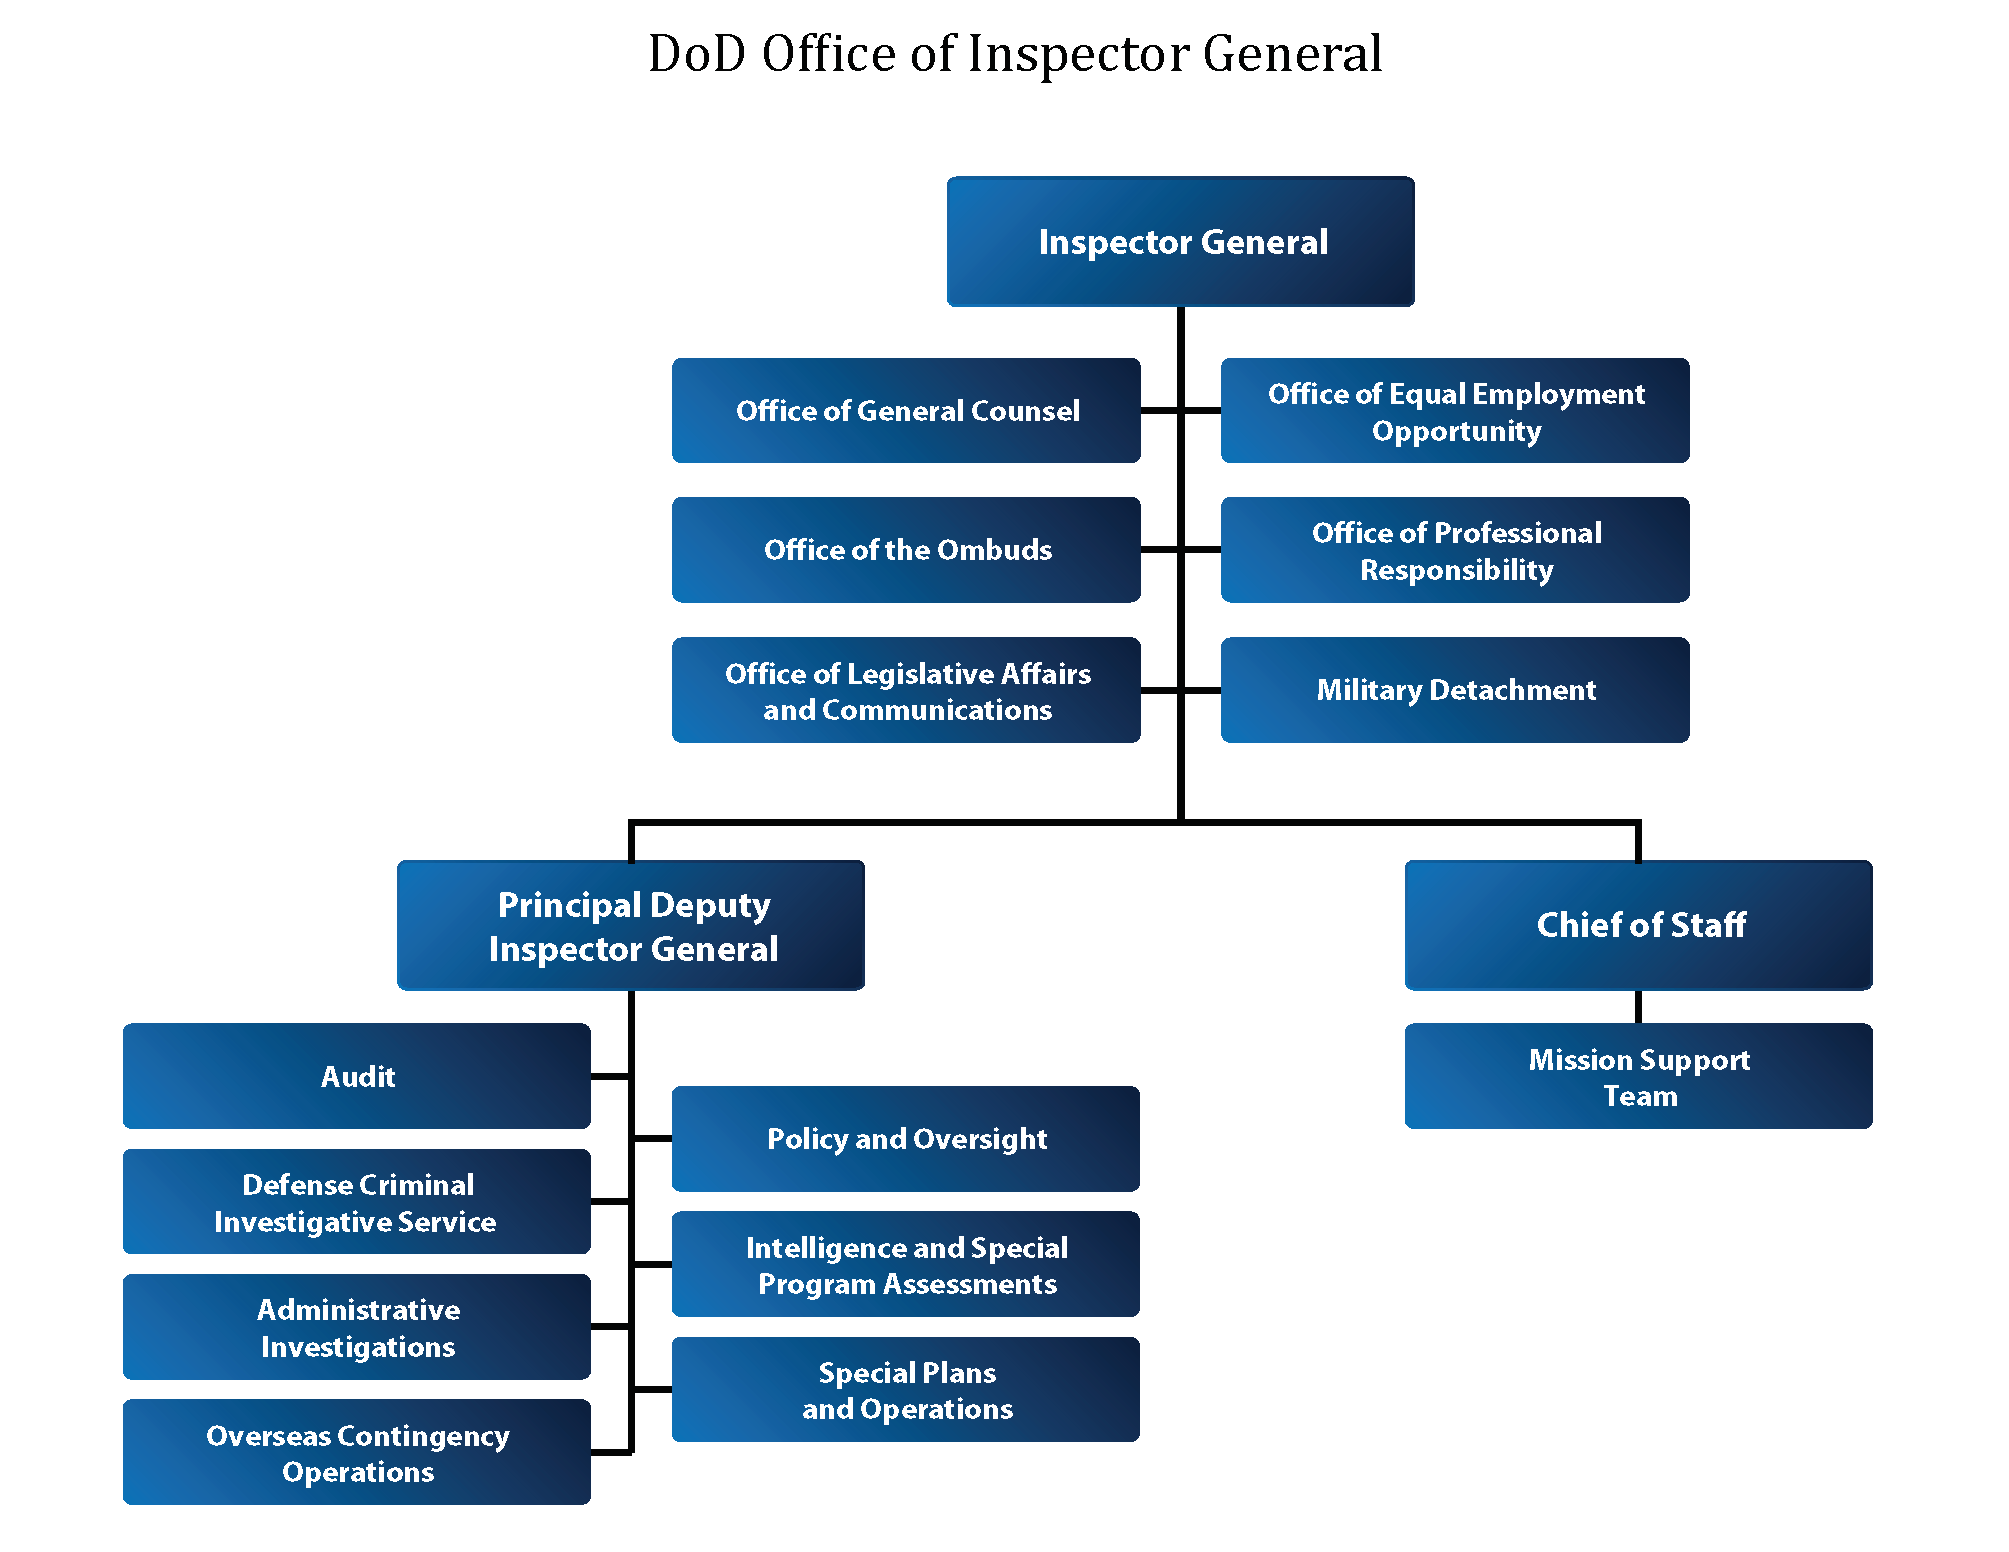 Department Of Defense Office Of Inspector General About Organization